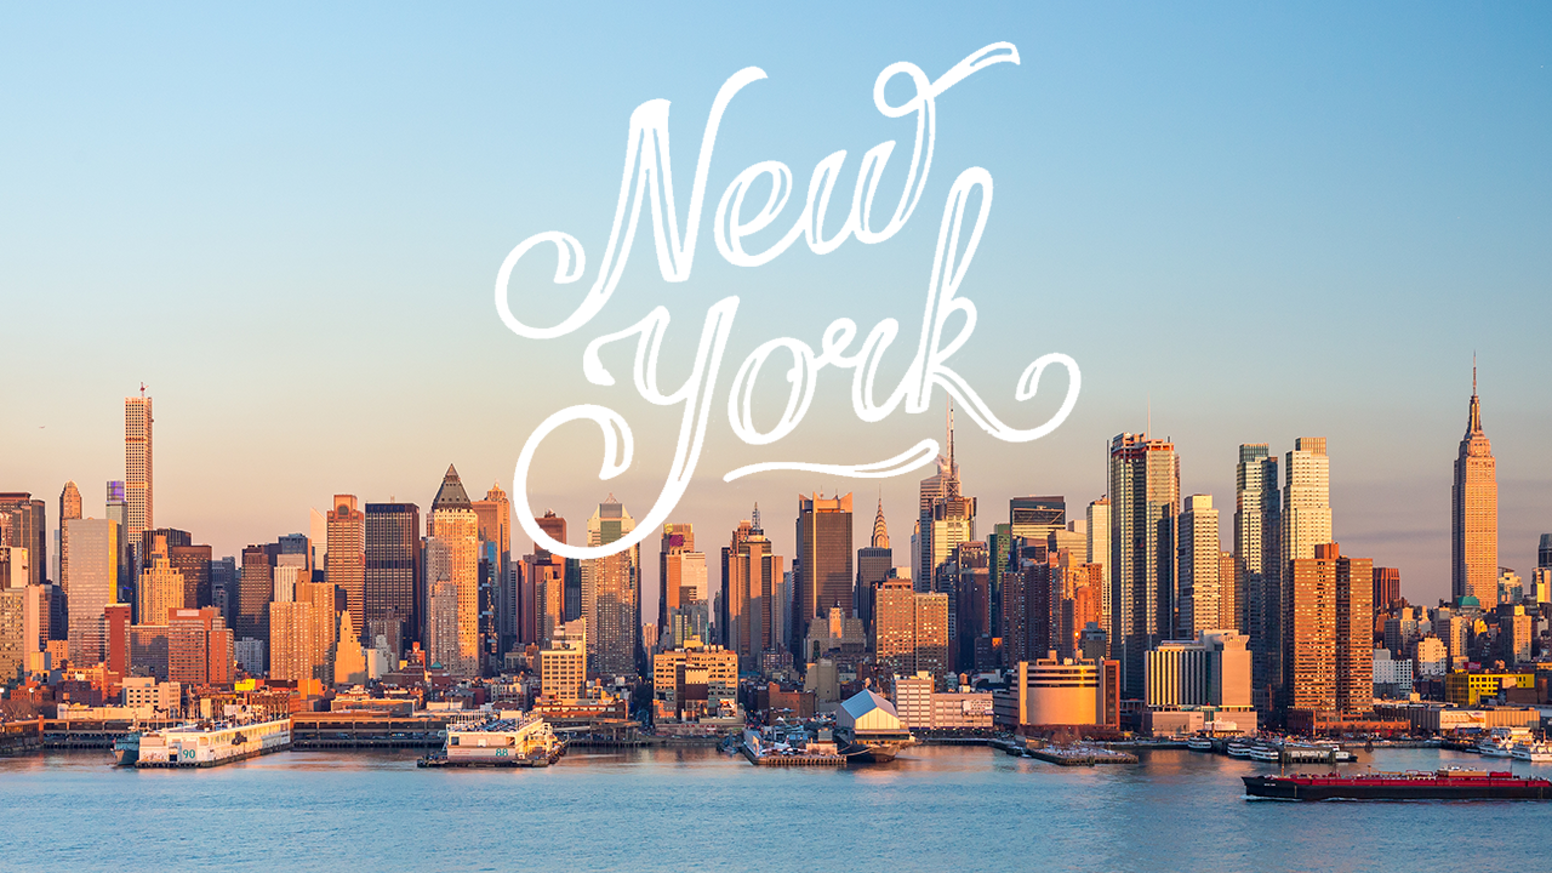 loving new york der innovativste reisef hrer der welt by loving new york kickstarter. Black Bedroom Furniture Sets. Home Design Ideas